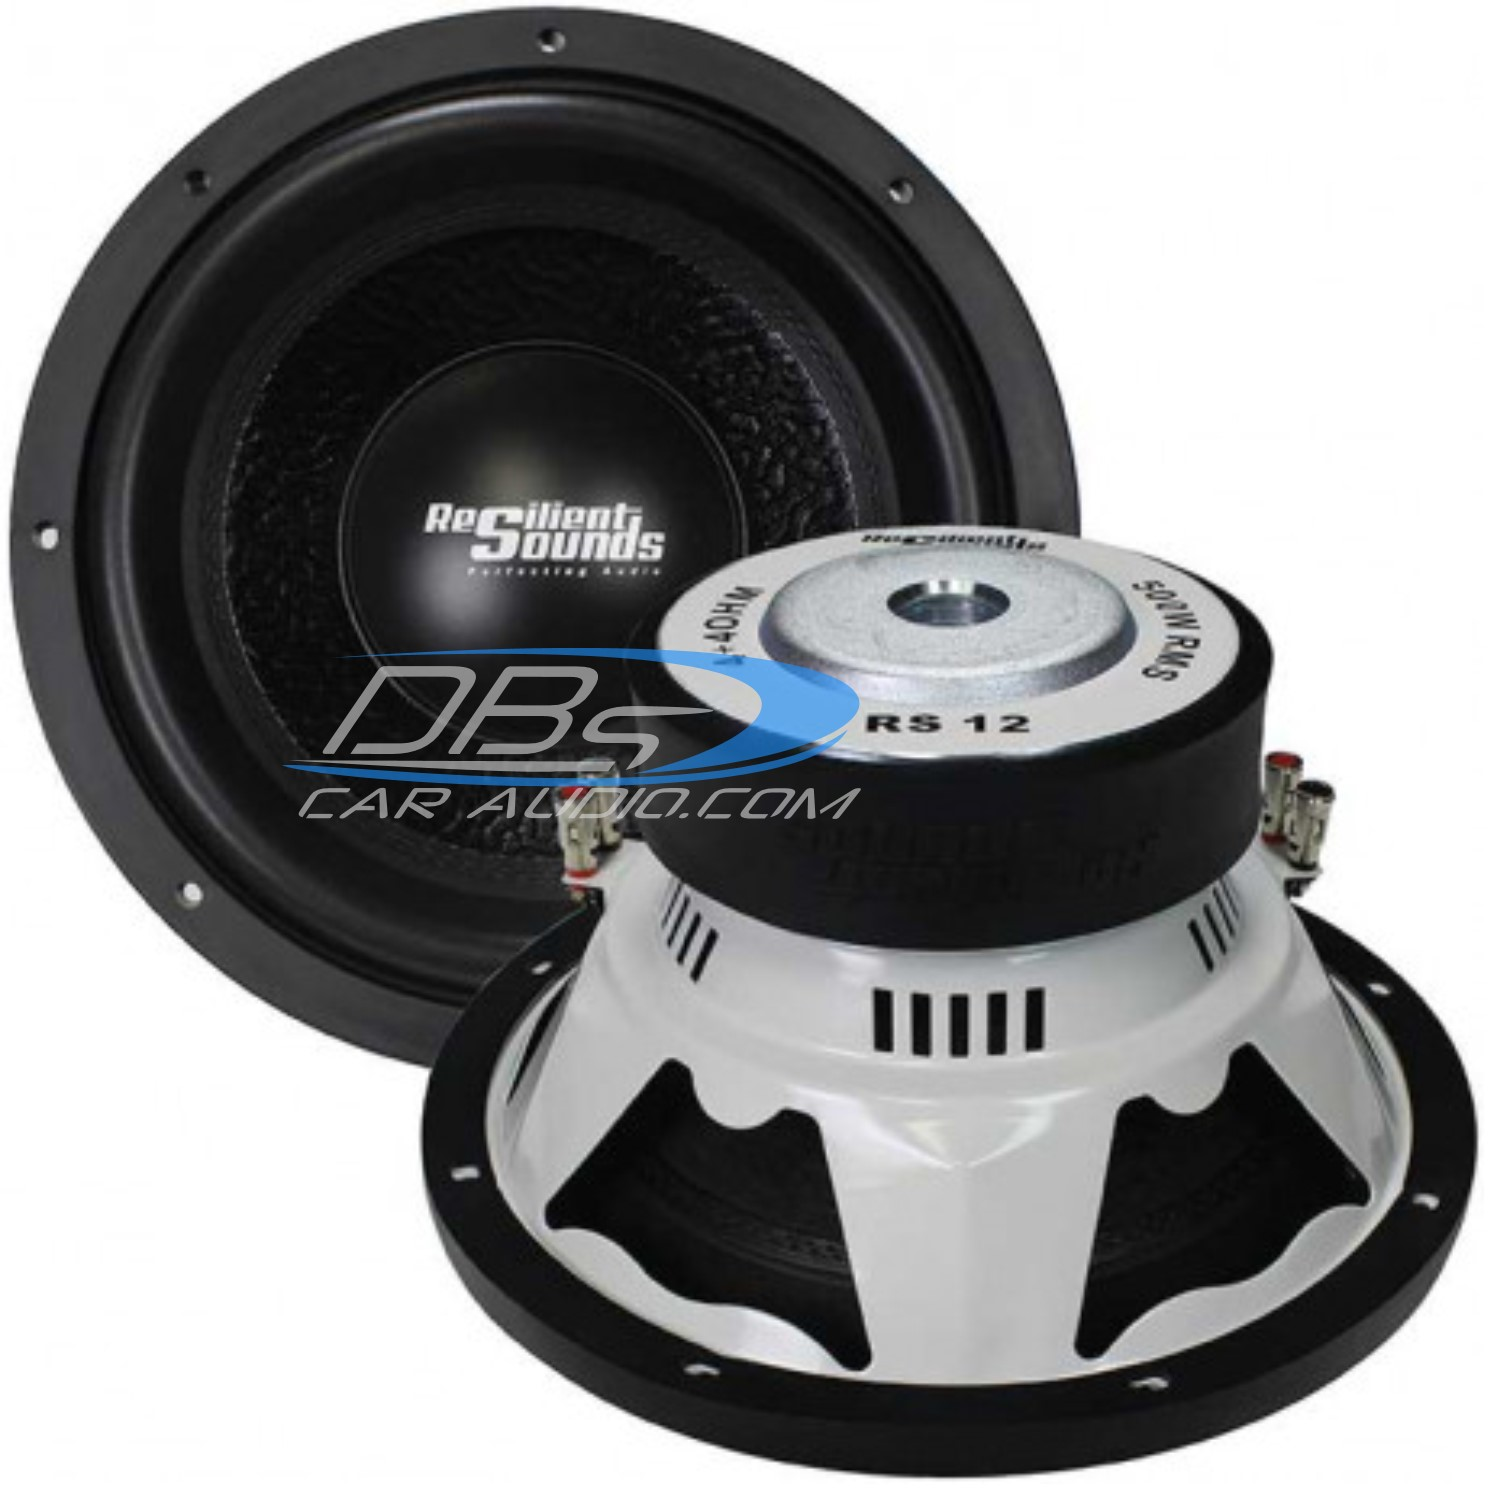 Resilient Sounds Rs 12 D4 1000w Max Dual 4 Ohm Subwoofer Car Stereo Kit 800w Sub 500w 2 Channel Amplifier Capacitor Wiring